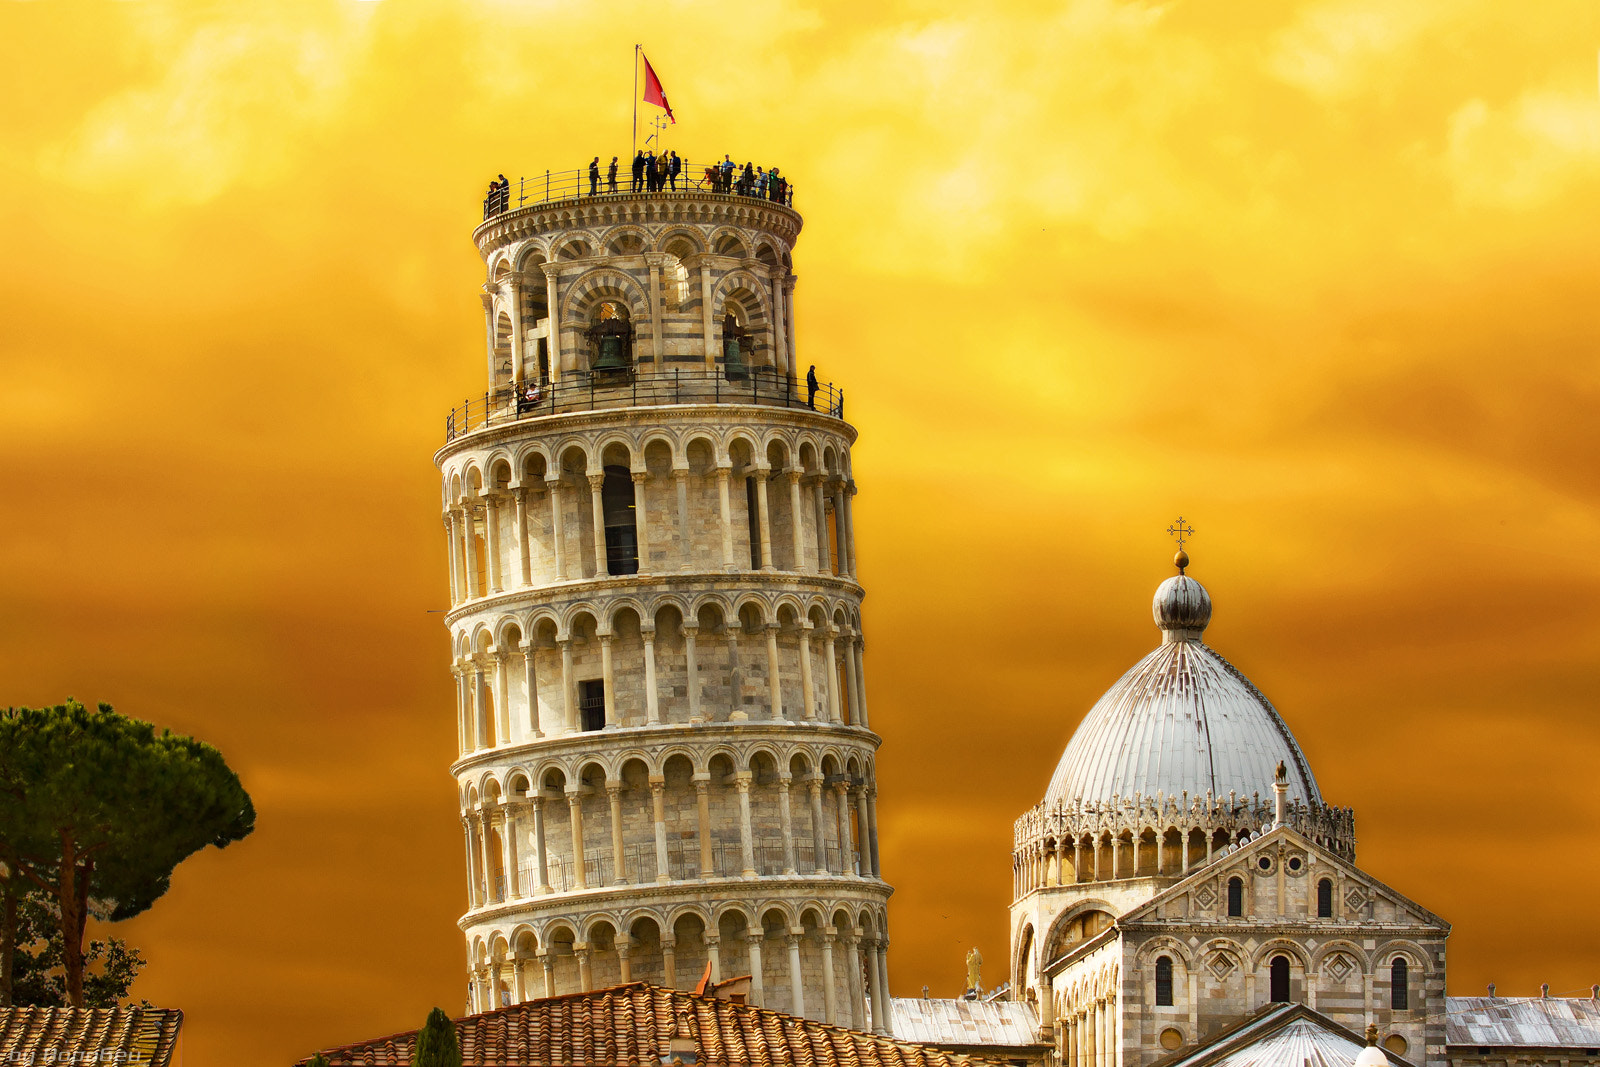 Photograph Tower of Pisa by Dmitriy Vorobey on 500px